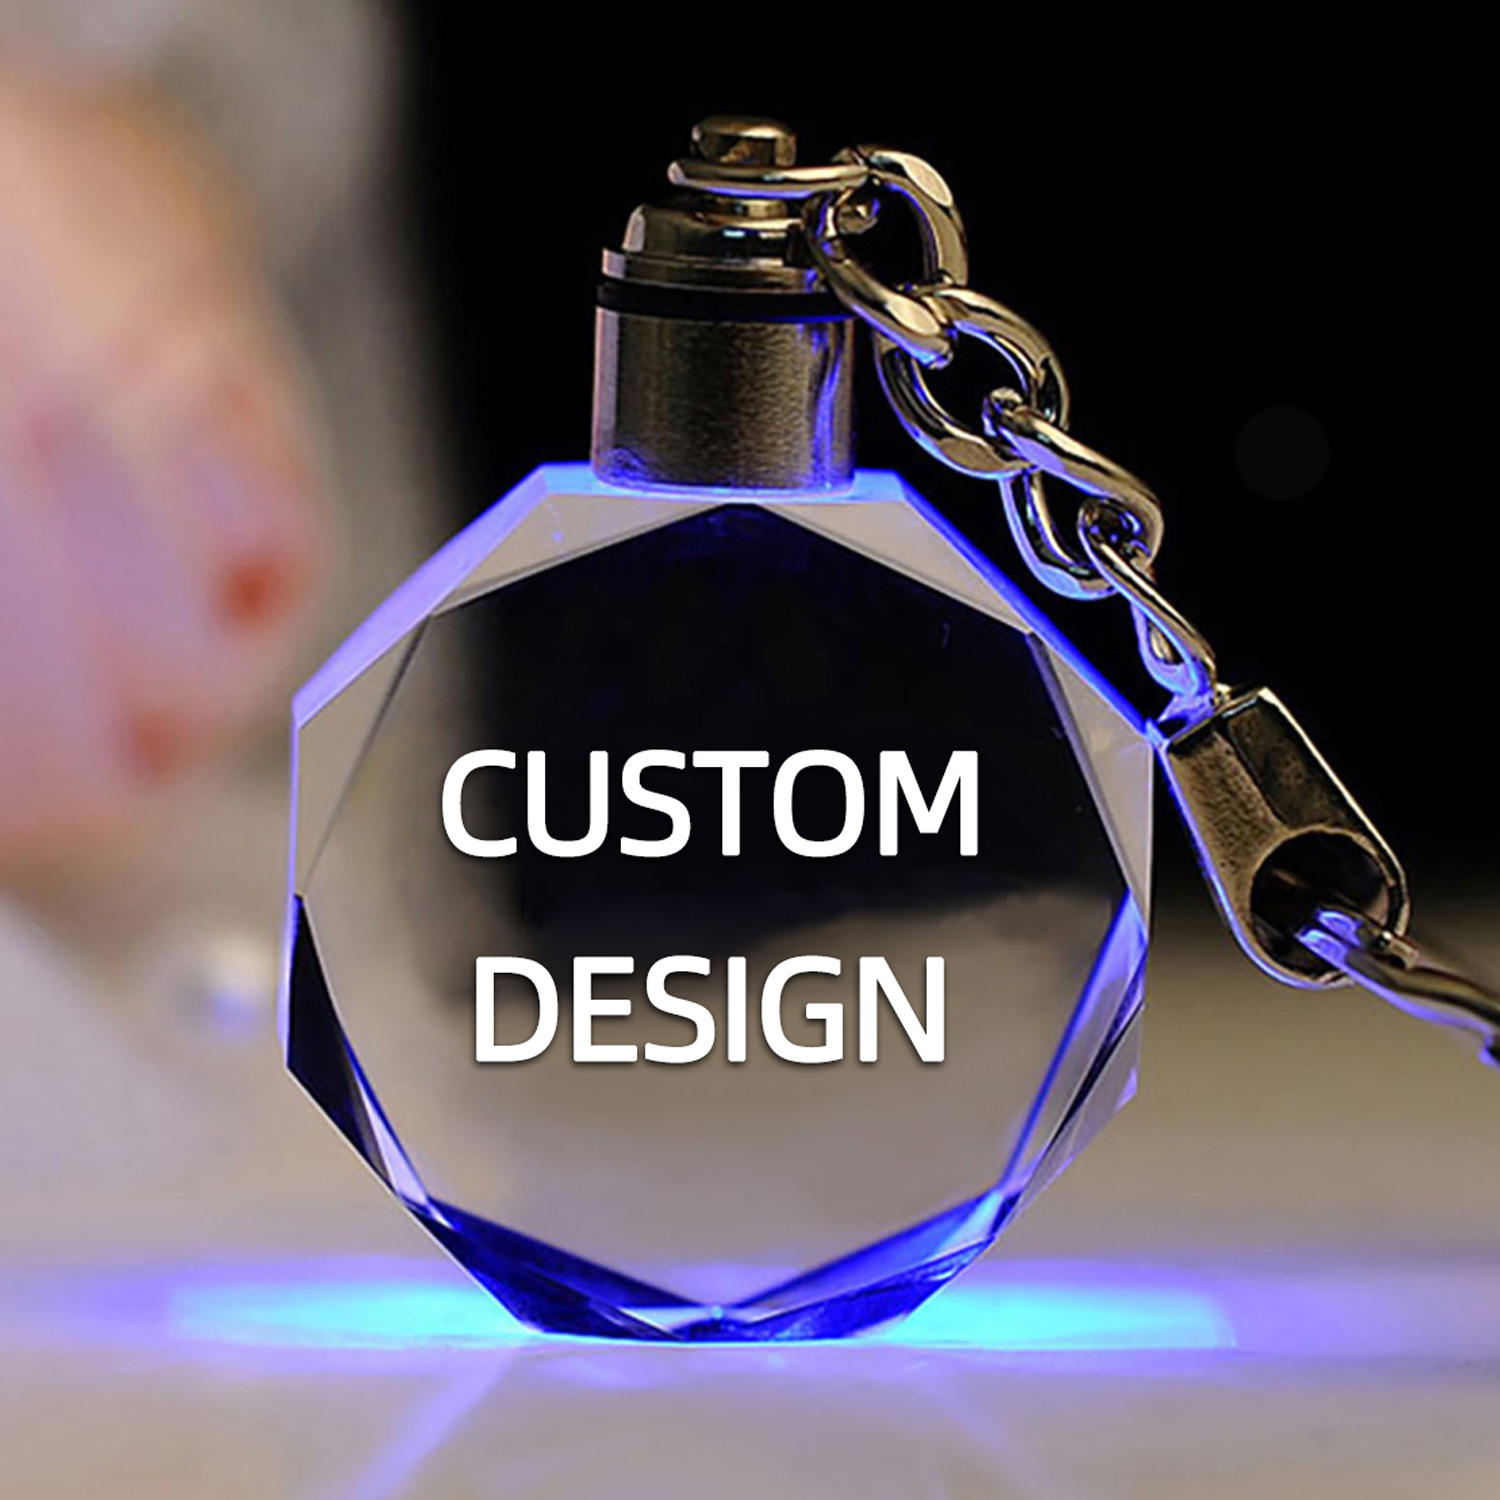 Wholesale Custom 3D Laser Engraving Led Light Keychain Crystal llaveros K9 Crystal Custom Car Logo Keychain